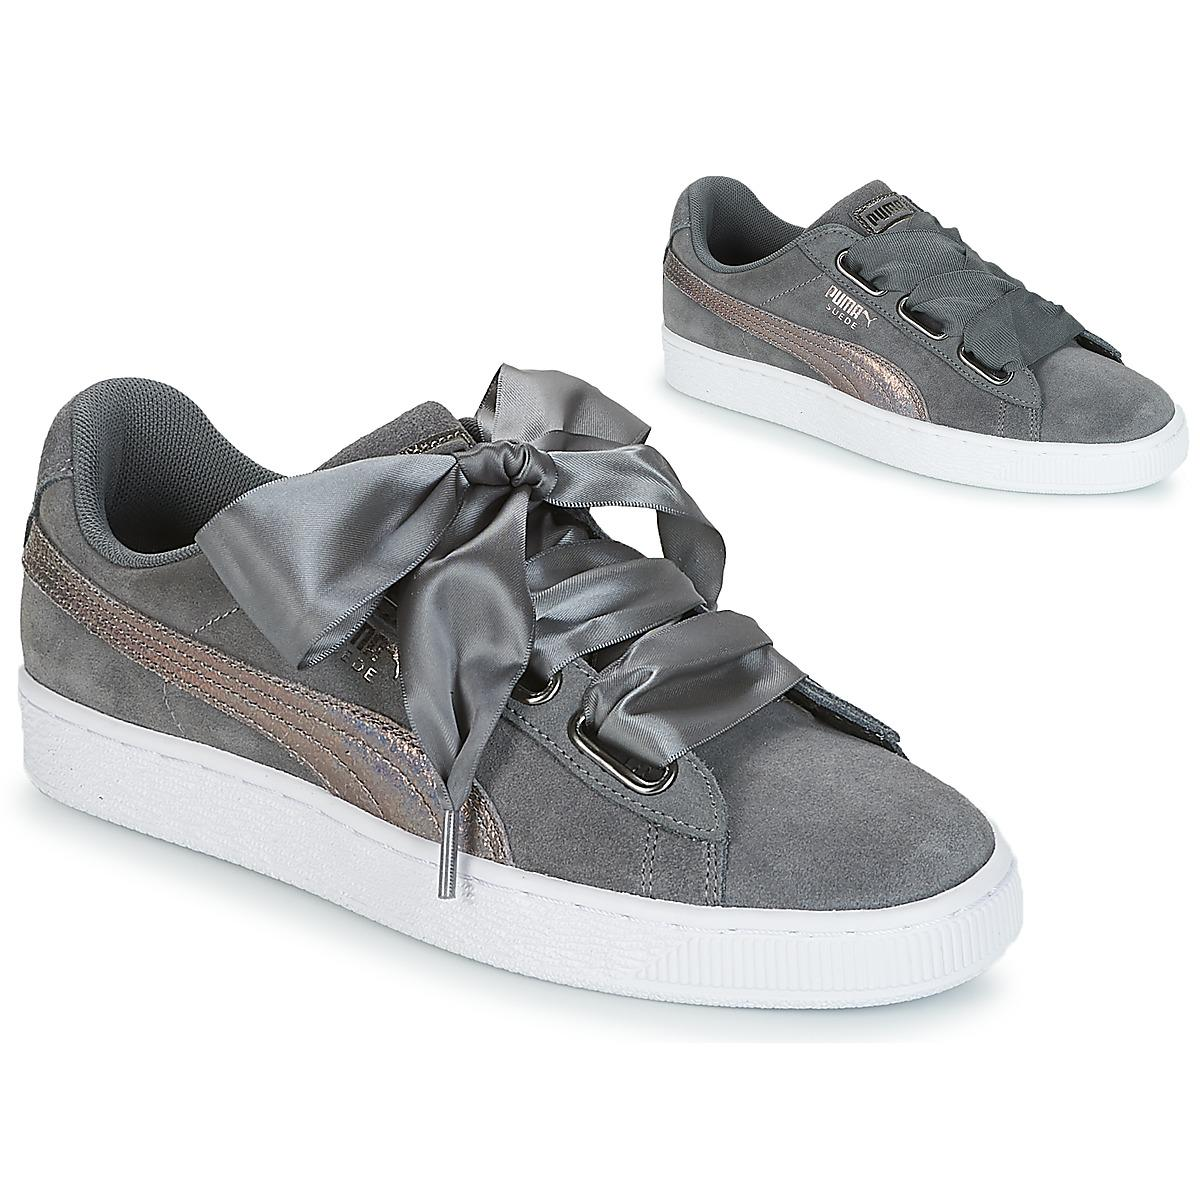 bbeeb5014f073b PUMA Suede Heart Lunalux Wn s Smoked Pearl in Gray - Lyst